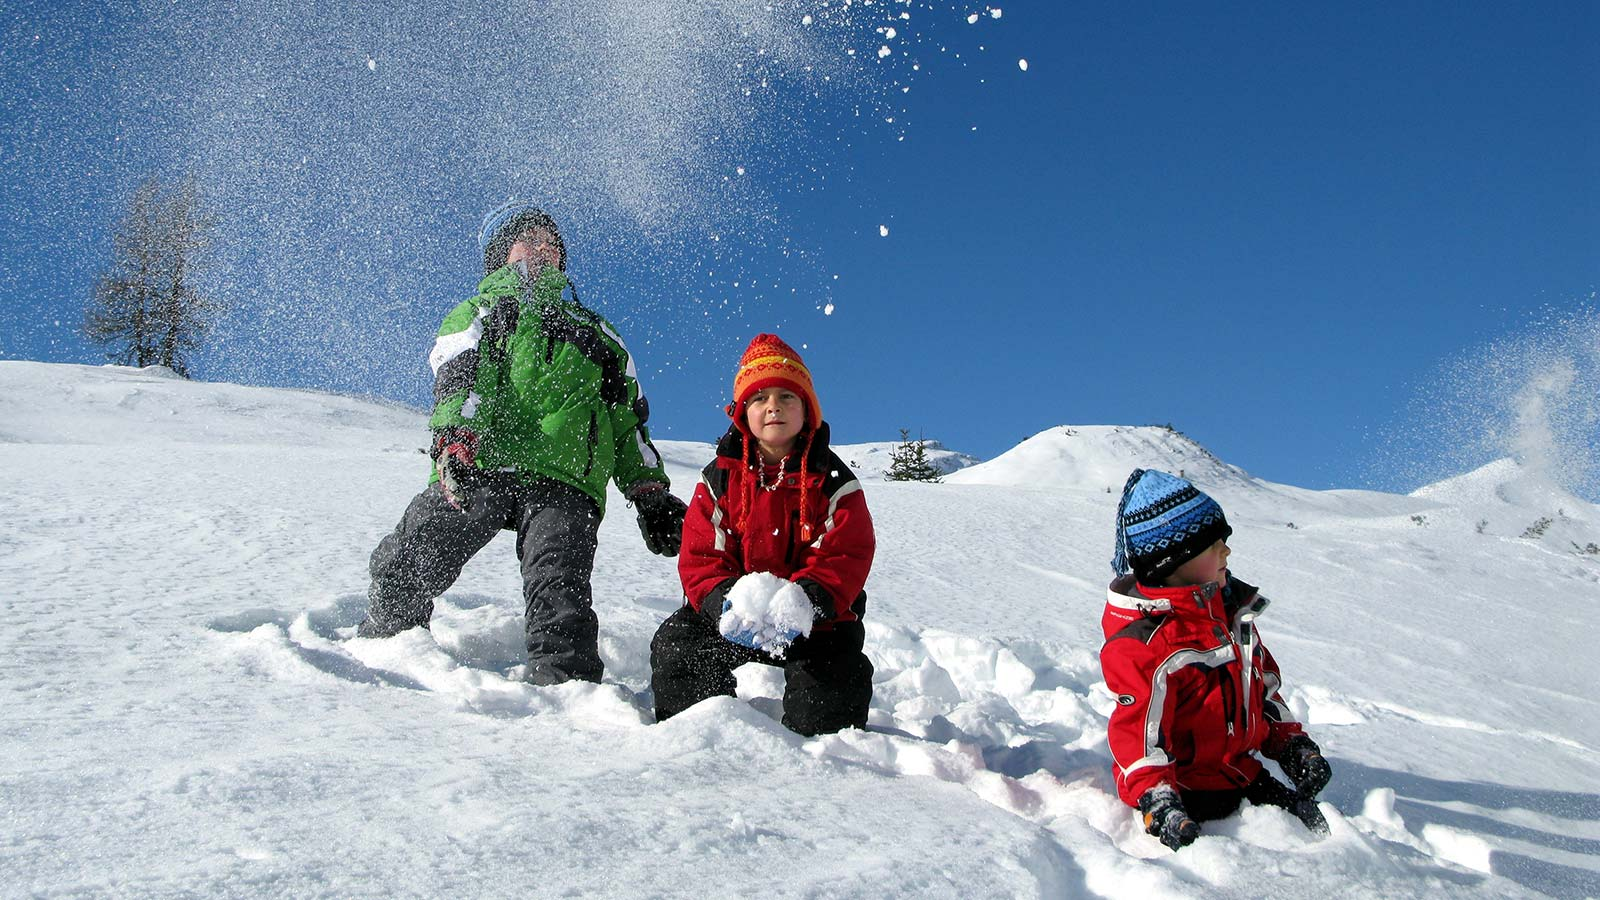 Three kids play in fresh snow in the mountains